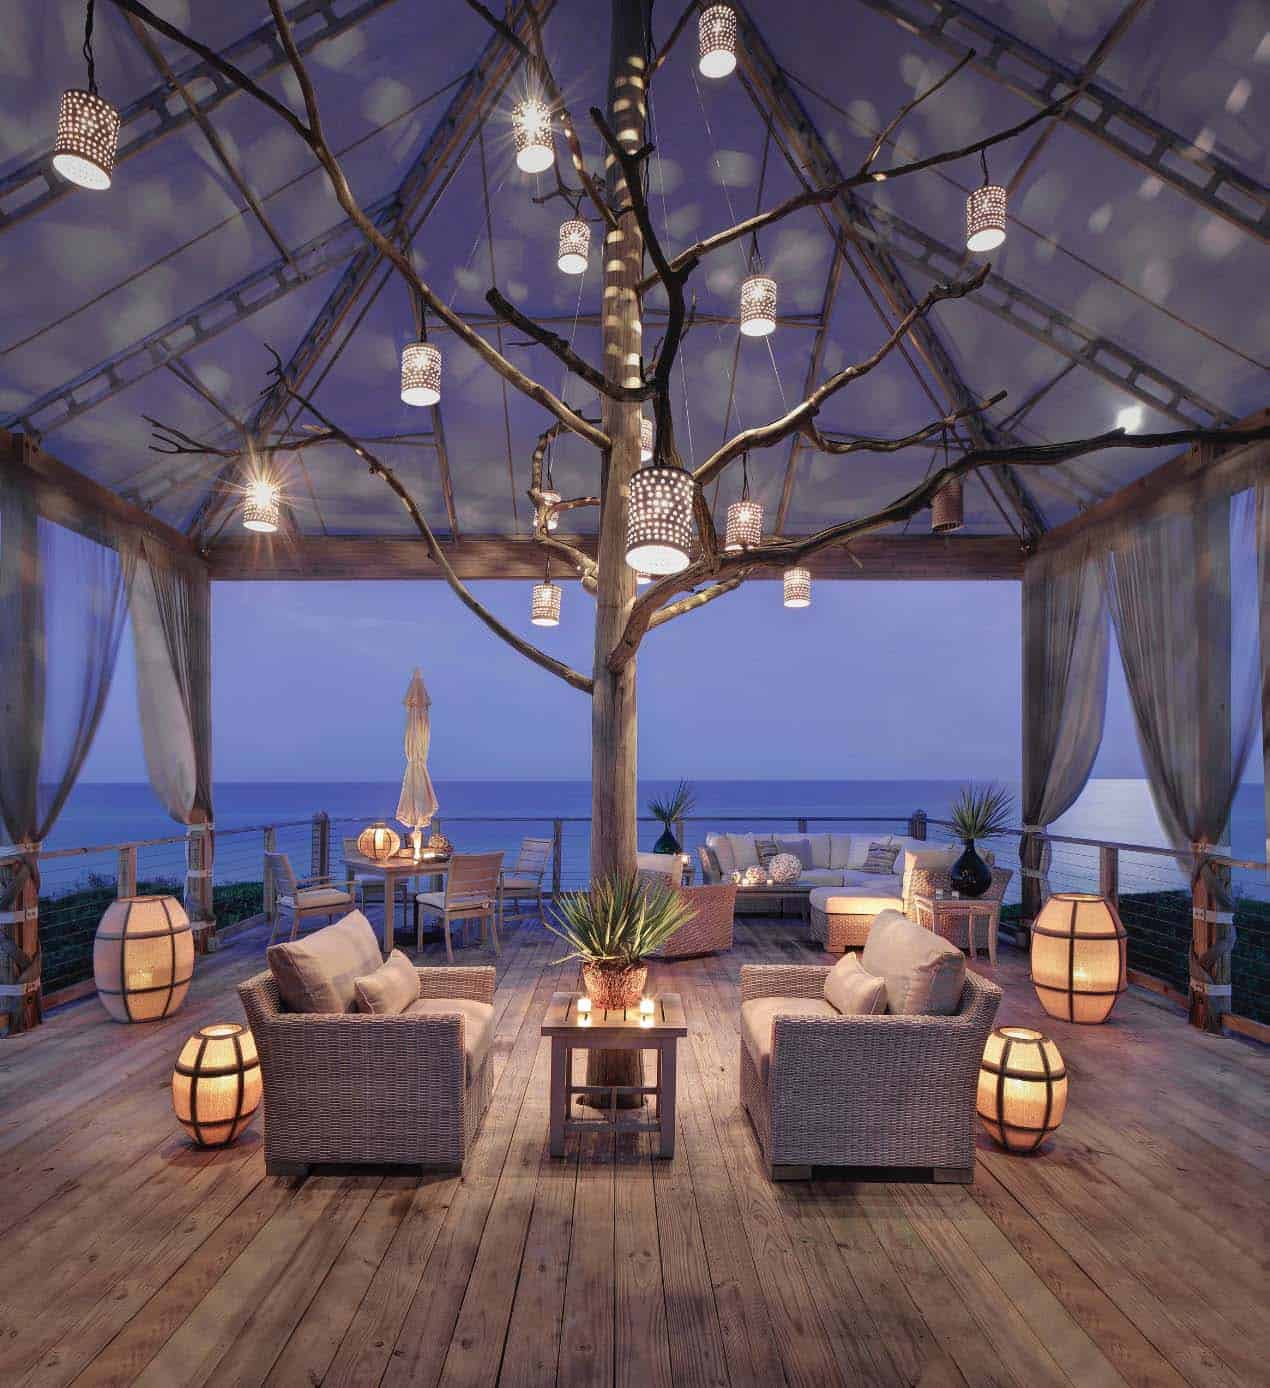 30+ Amazing beach style deck ideas promoting relaxation